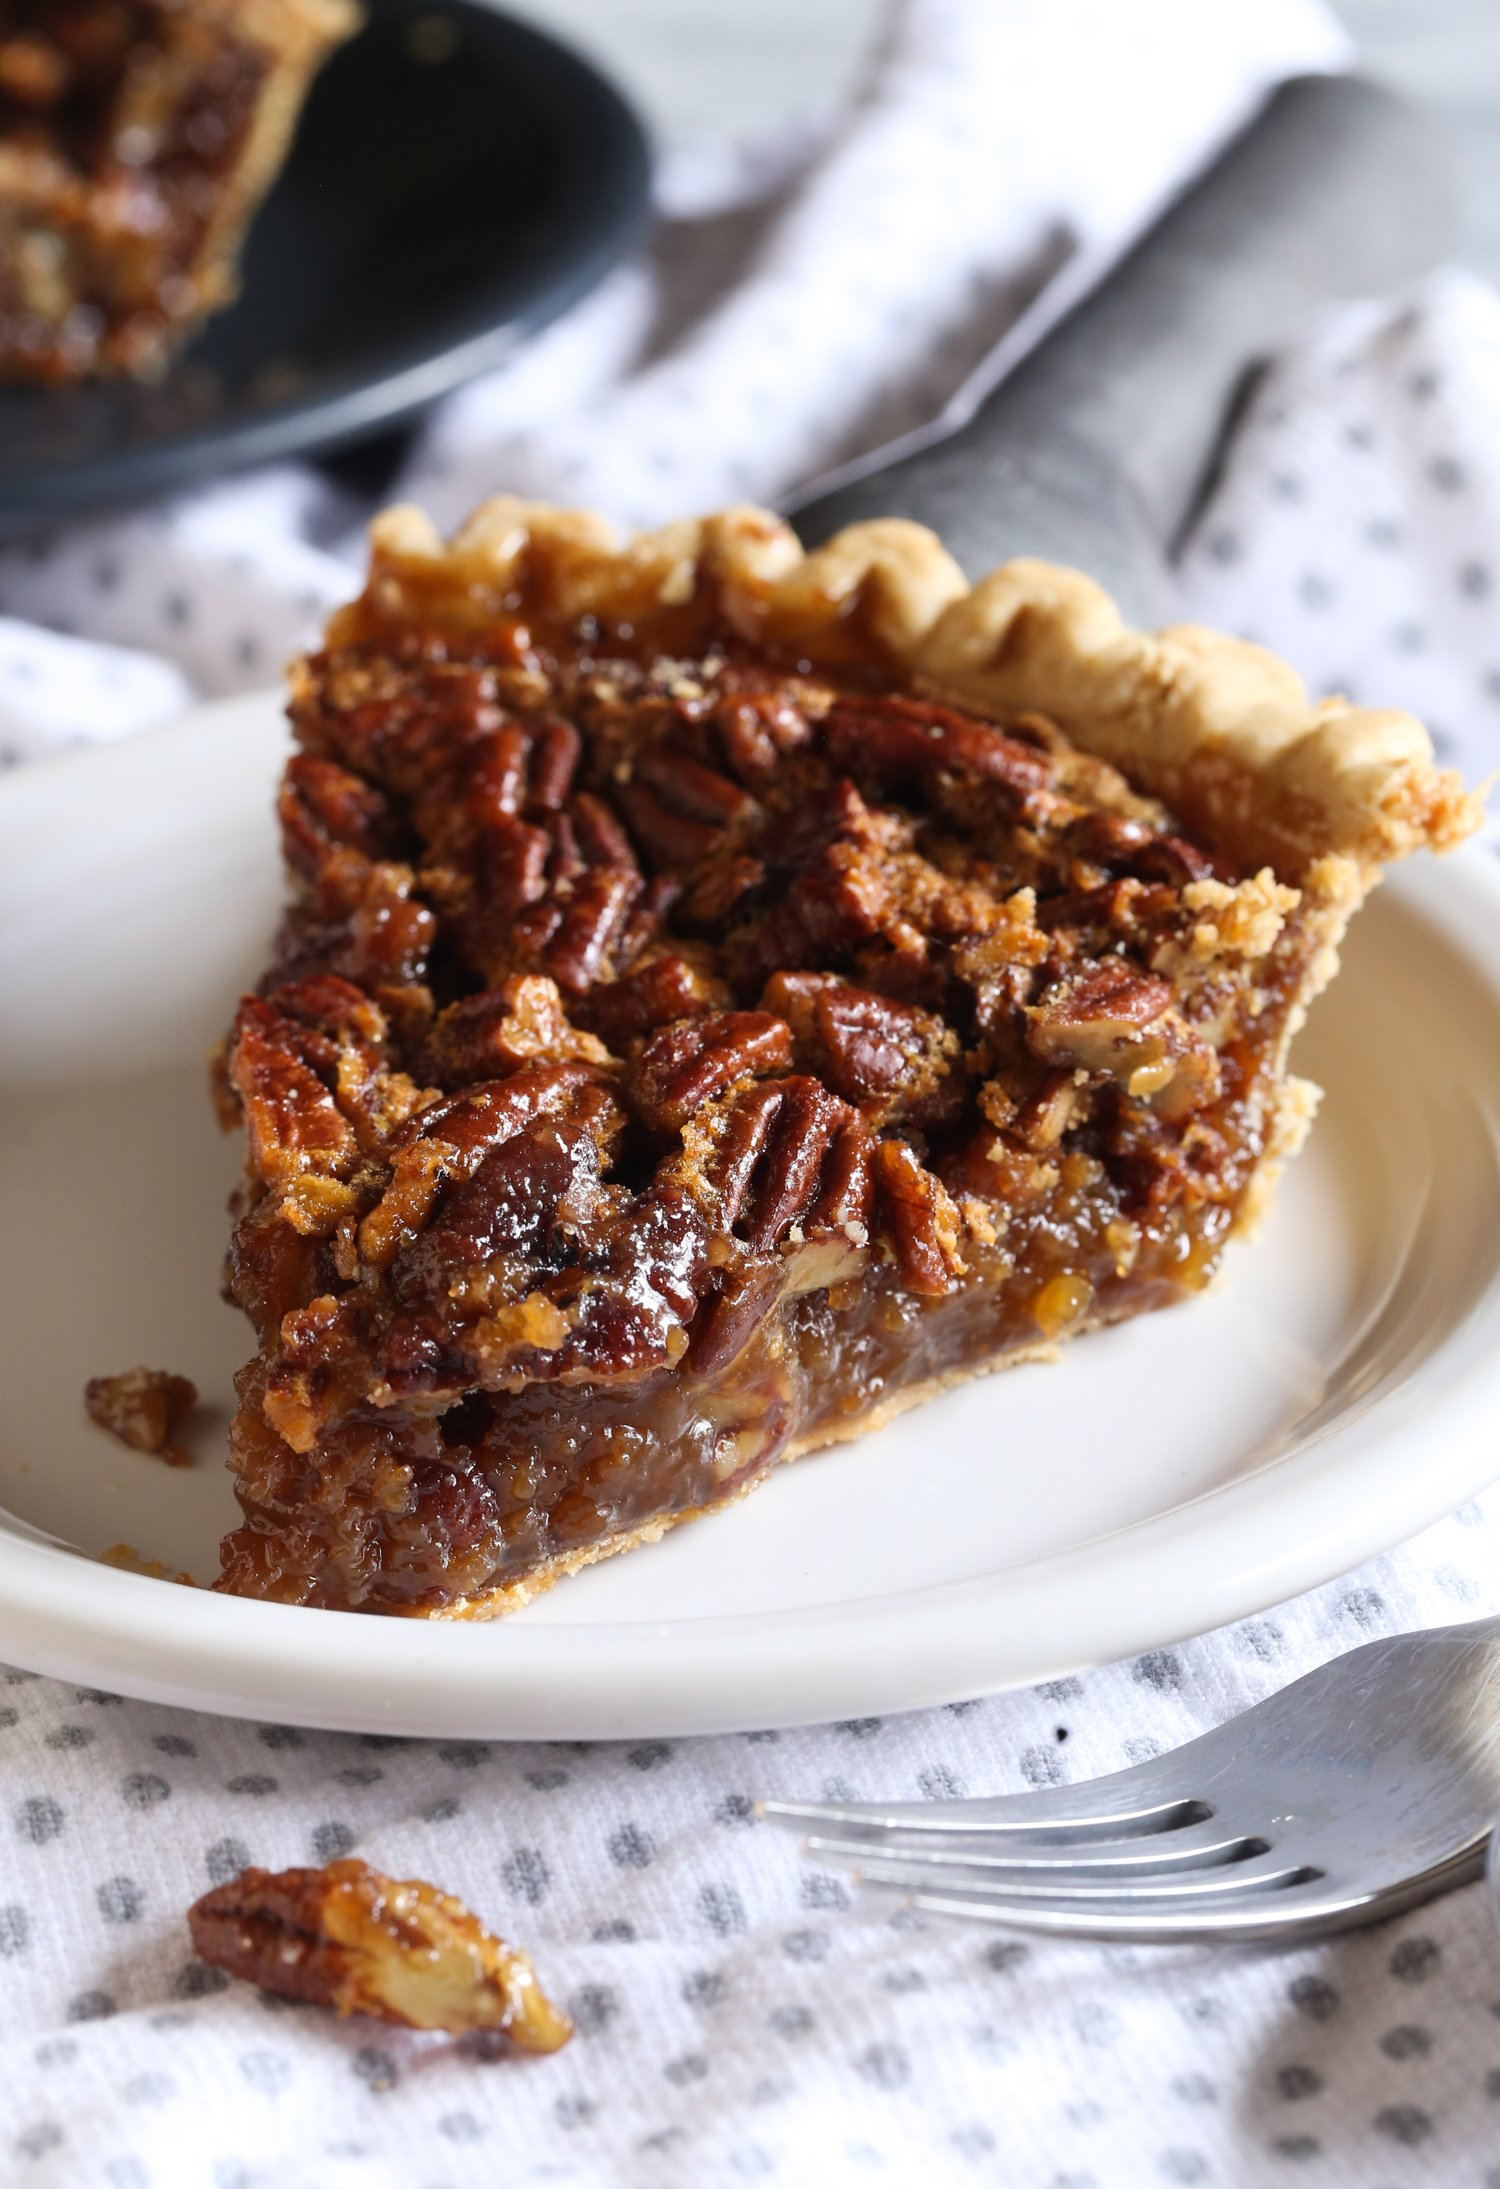 Easy Pecan Pie Recipe The Best Old Fashioned Pecan Pie